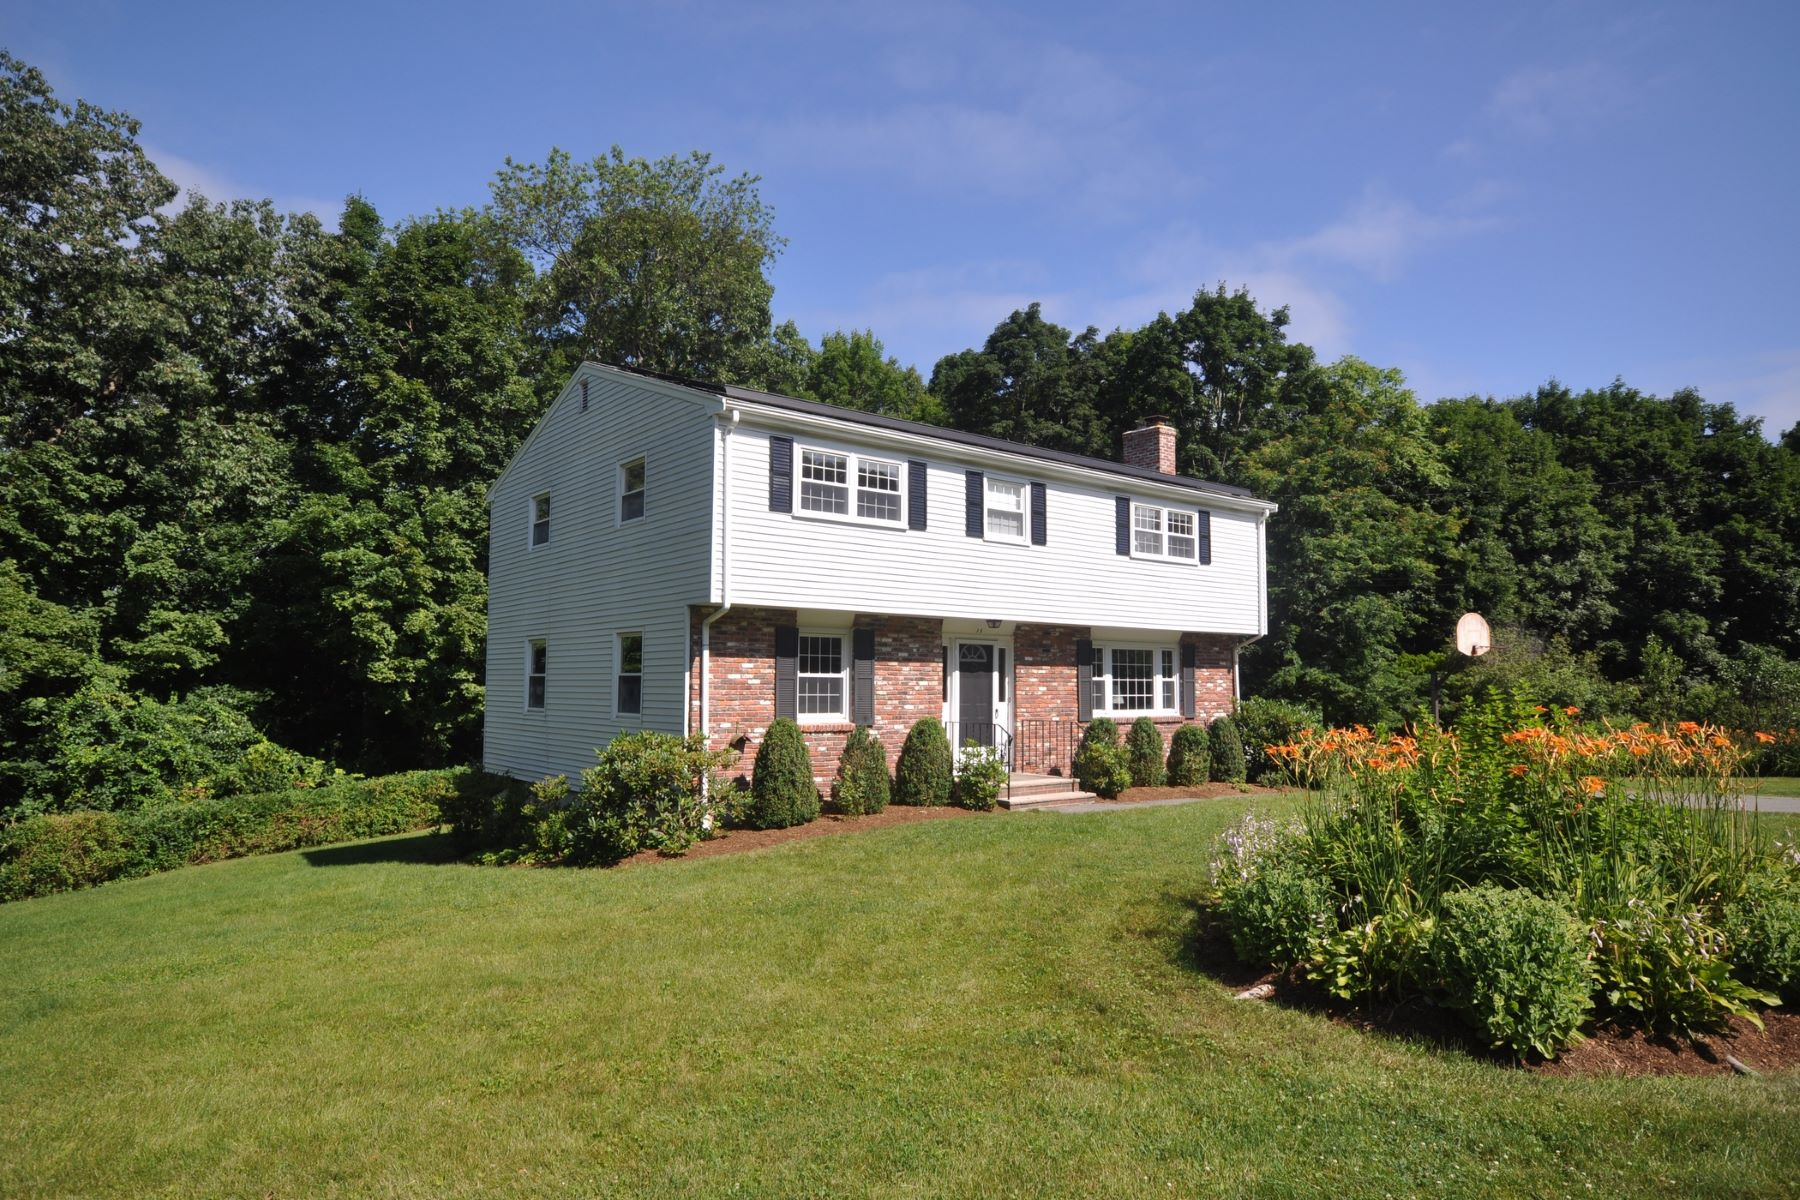 Single Family Homes for Sale at 13 Faulkner Hill Rd Acton, Massachusetts 01720 United States